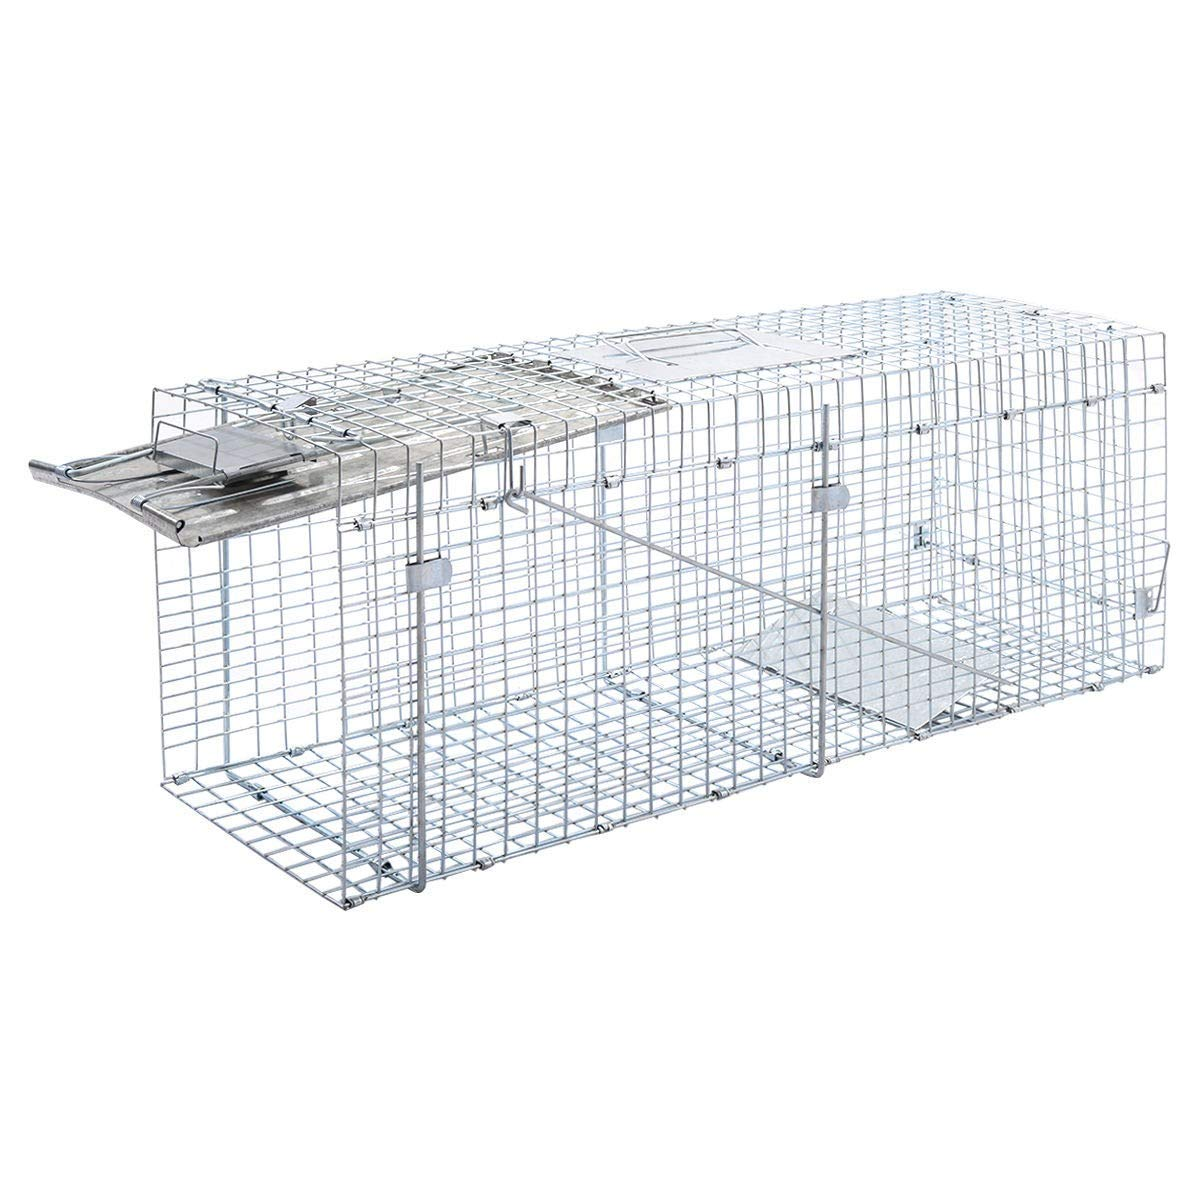 BeUniqueToday Trap Mouse Catch Bait Live Animal Cage, Heavy Duty and Durable Trap Mouse Catch Bait Live Animal Cage, Safe and Humane Animal Cage Trap Mouse Catch Bait Live